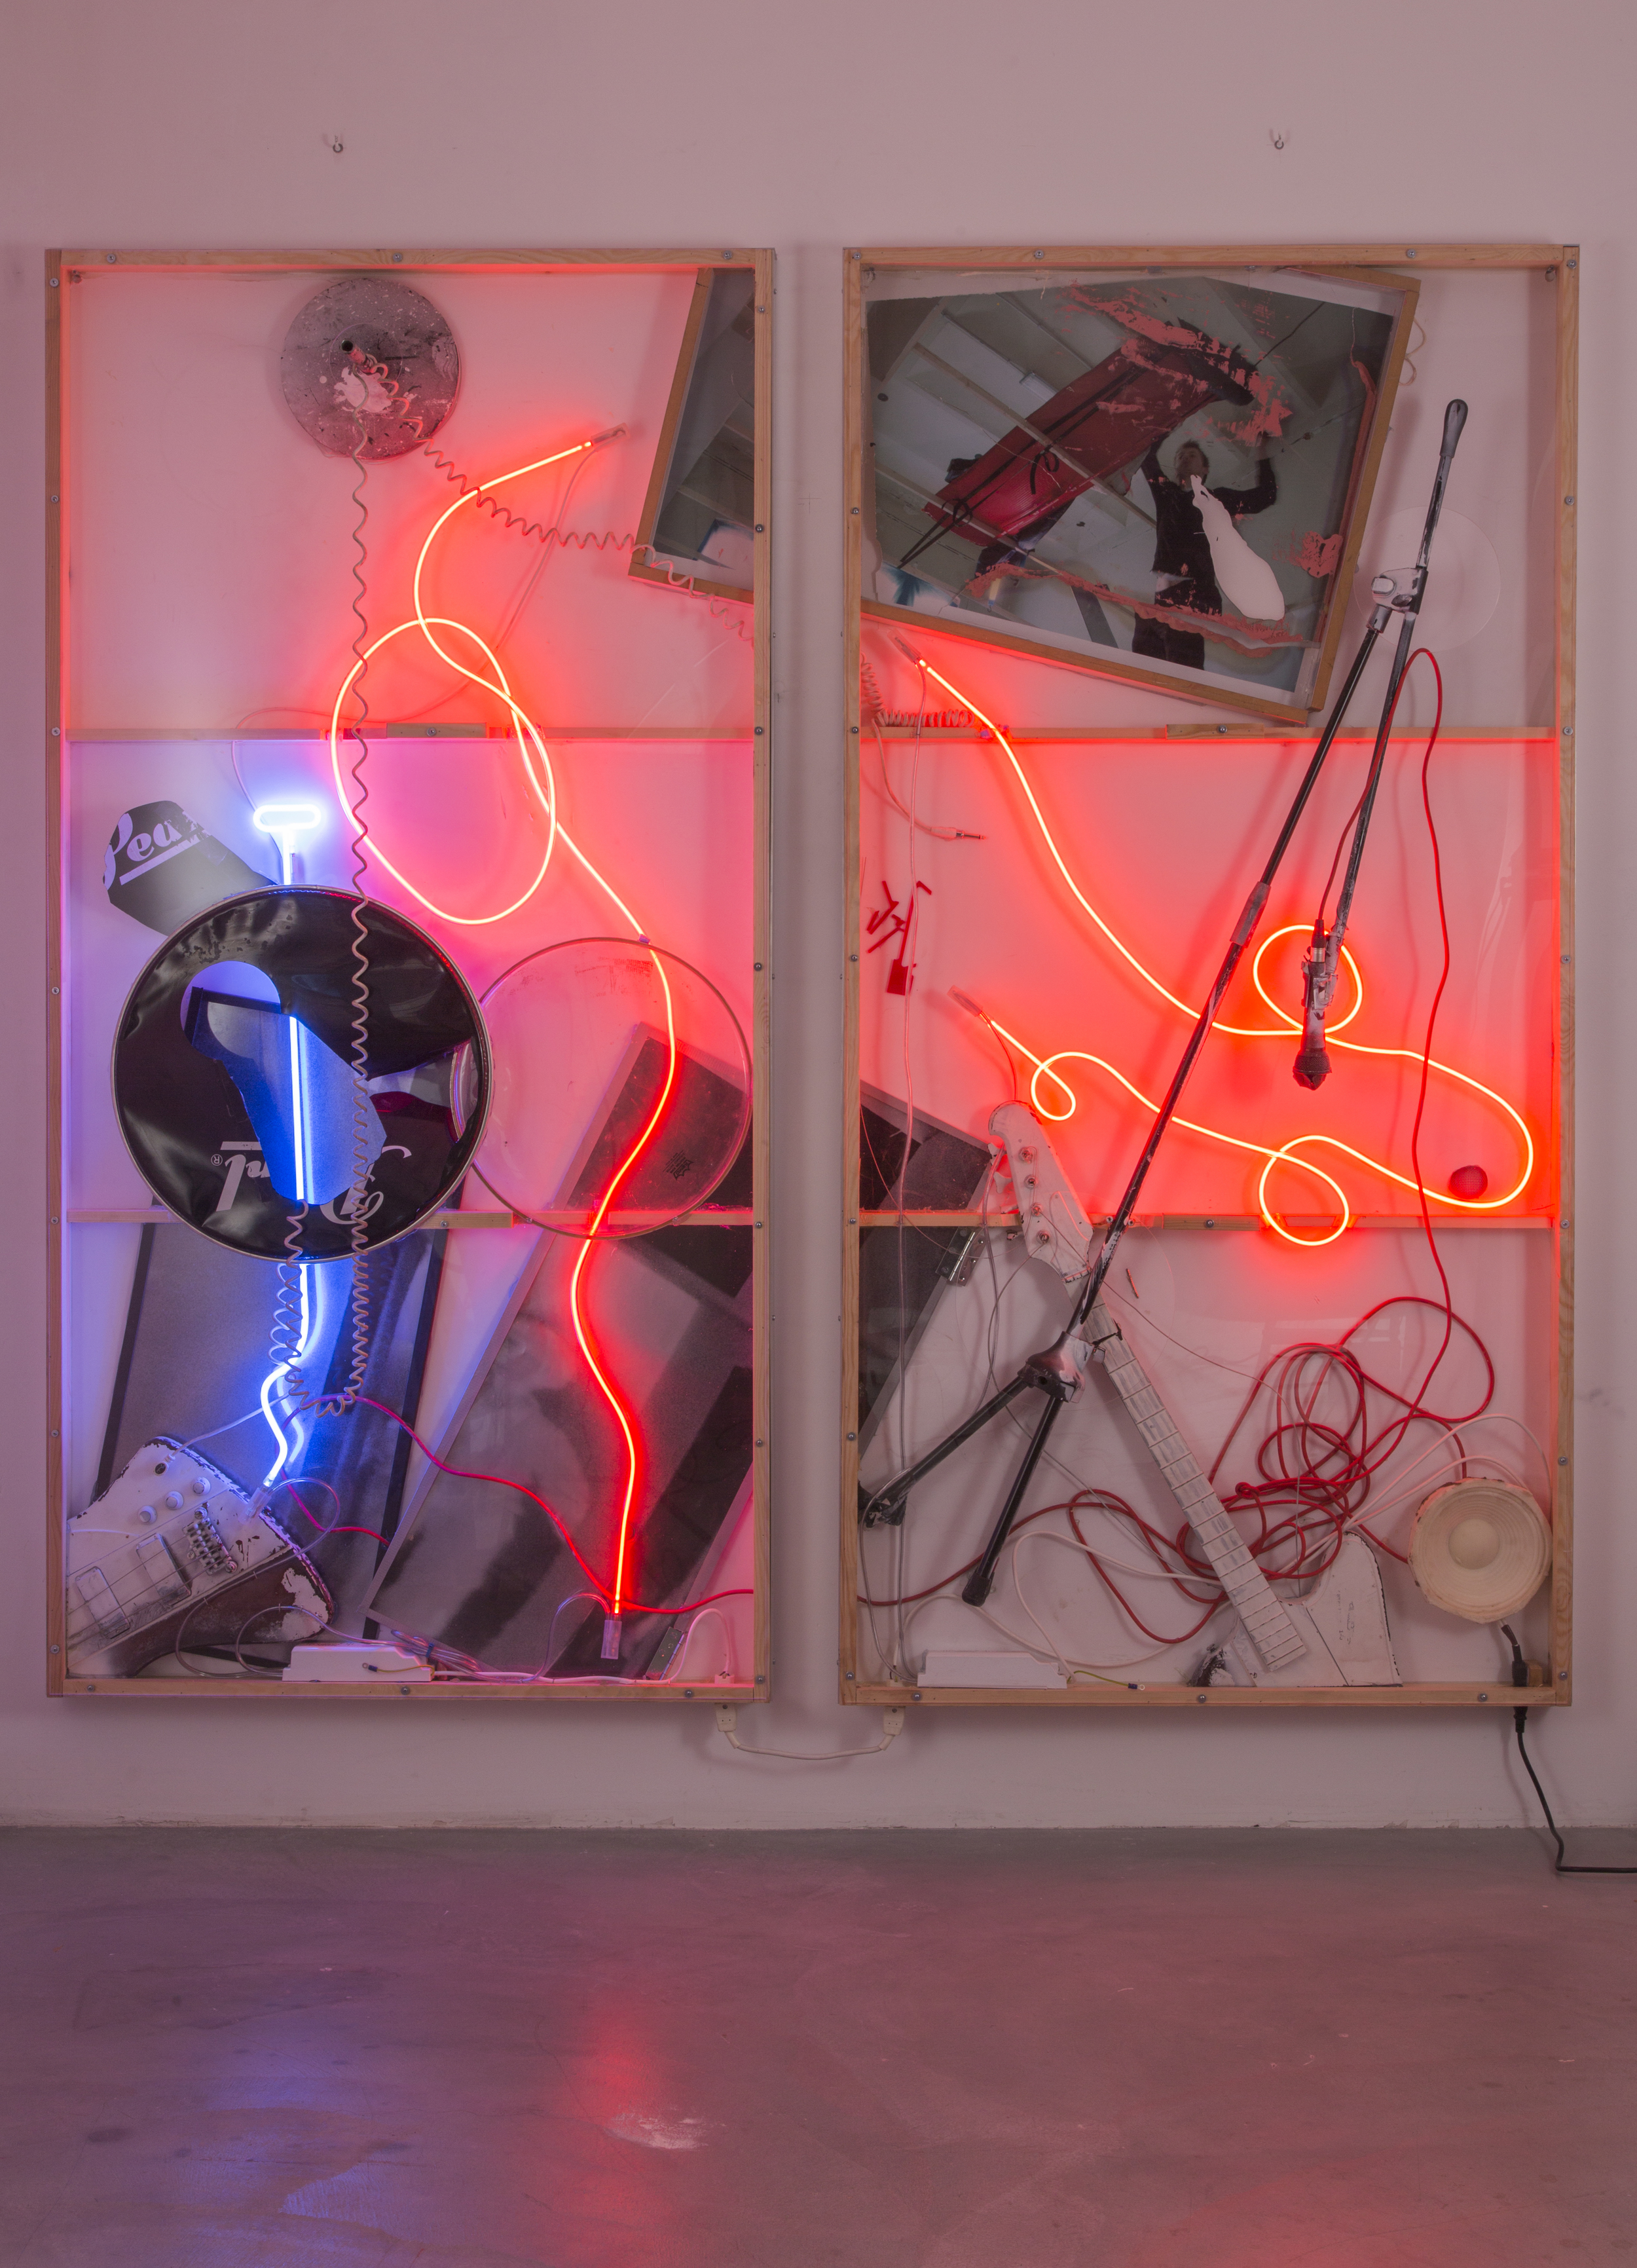 Joris Van de Moortel ,  Dramatic lightning and billows of fog, it's rare for any two performances to look and sound exactly the same  (2015). 78.95 x 83.45 x 7.9 inches. Digital printing, oil painting, neon, Plexiglass, wood, aluminum, cables, battery pieces, microphone stand, microphone, speaker resin and various objects undefined. ( Photo :   ©   WE DOCUMENT ART)